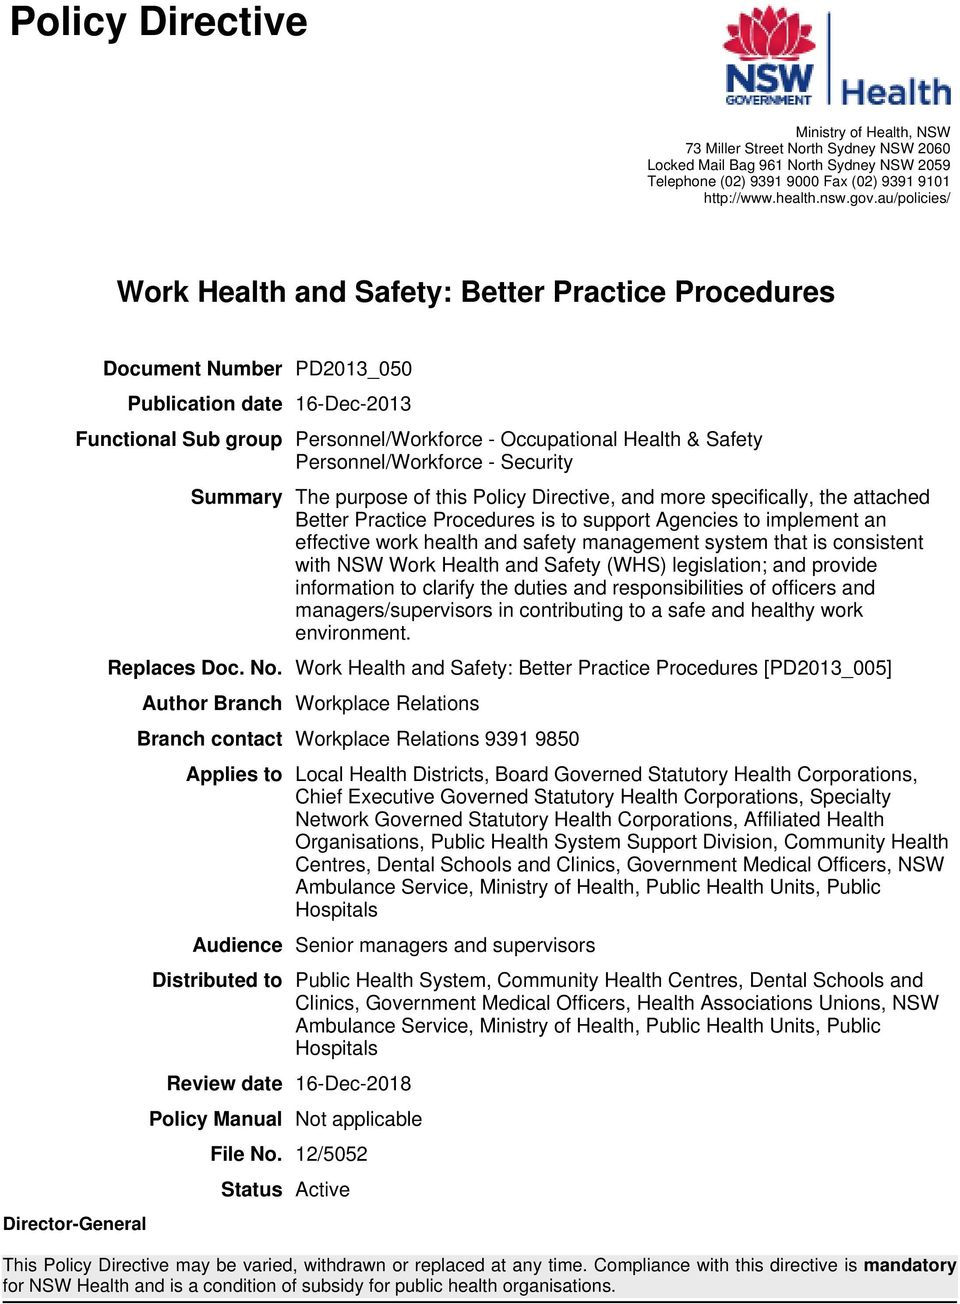 Personnel/Workforce - Security Summary The purpose of this Policy Directive, and more specifically, the attached Better Practice Procedures is to support Agencies to implement an effective work